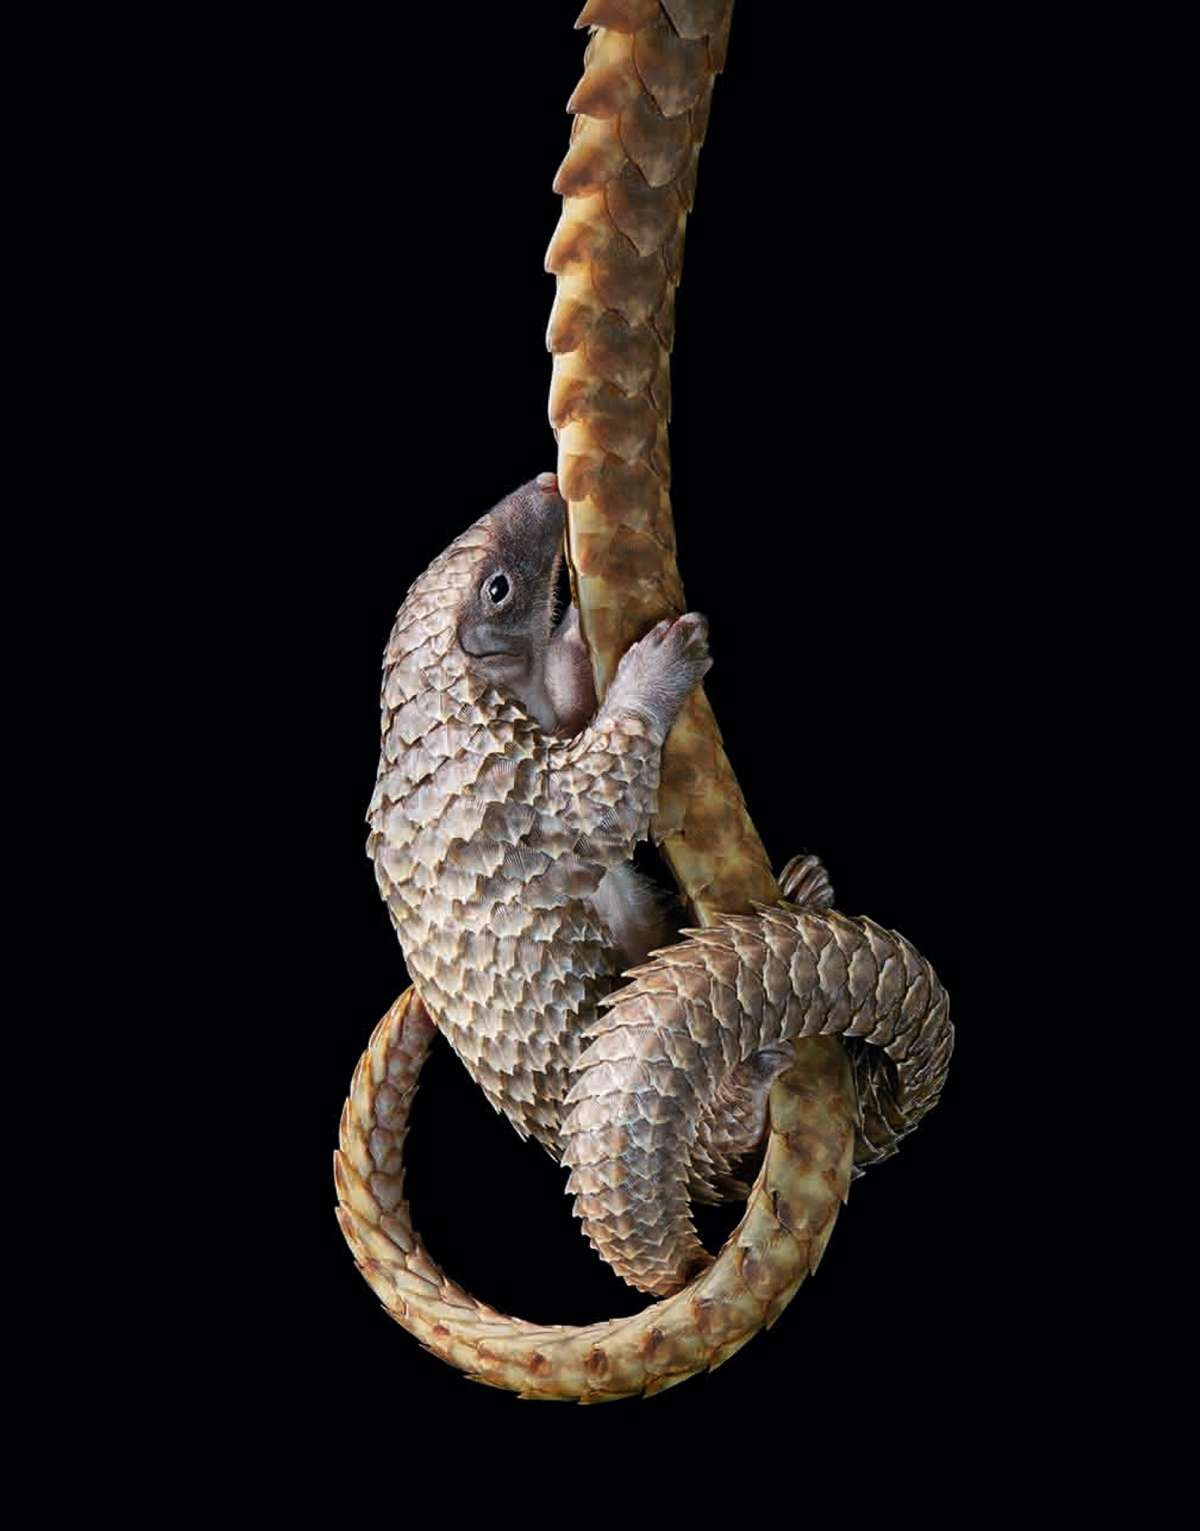 A white bellied pangolin (©Tim Flach)